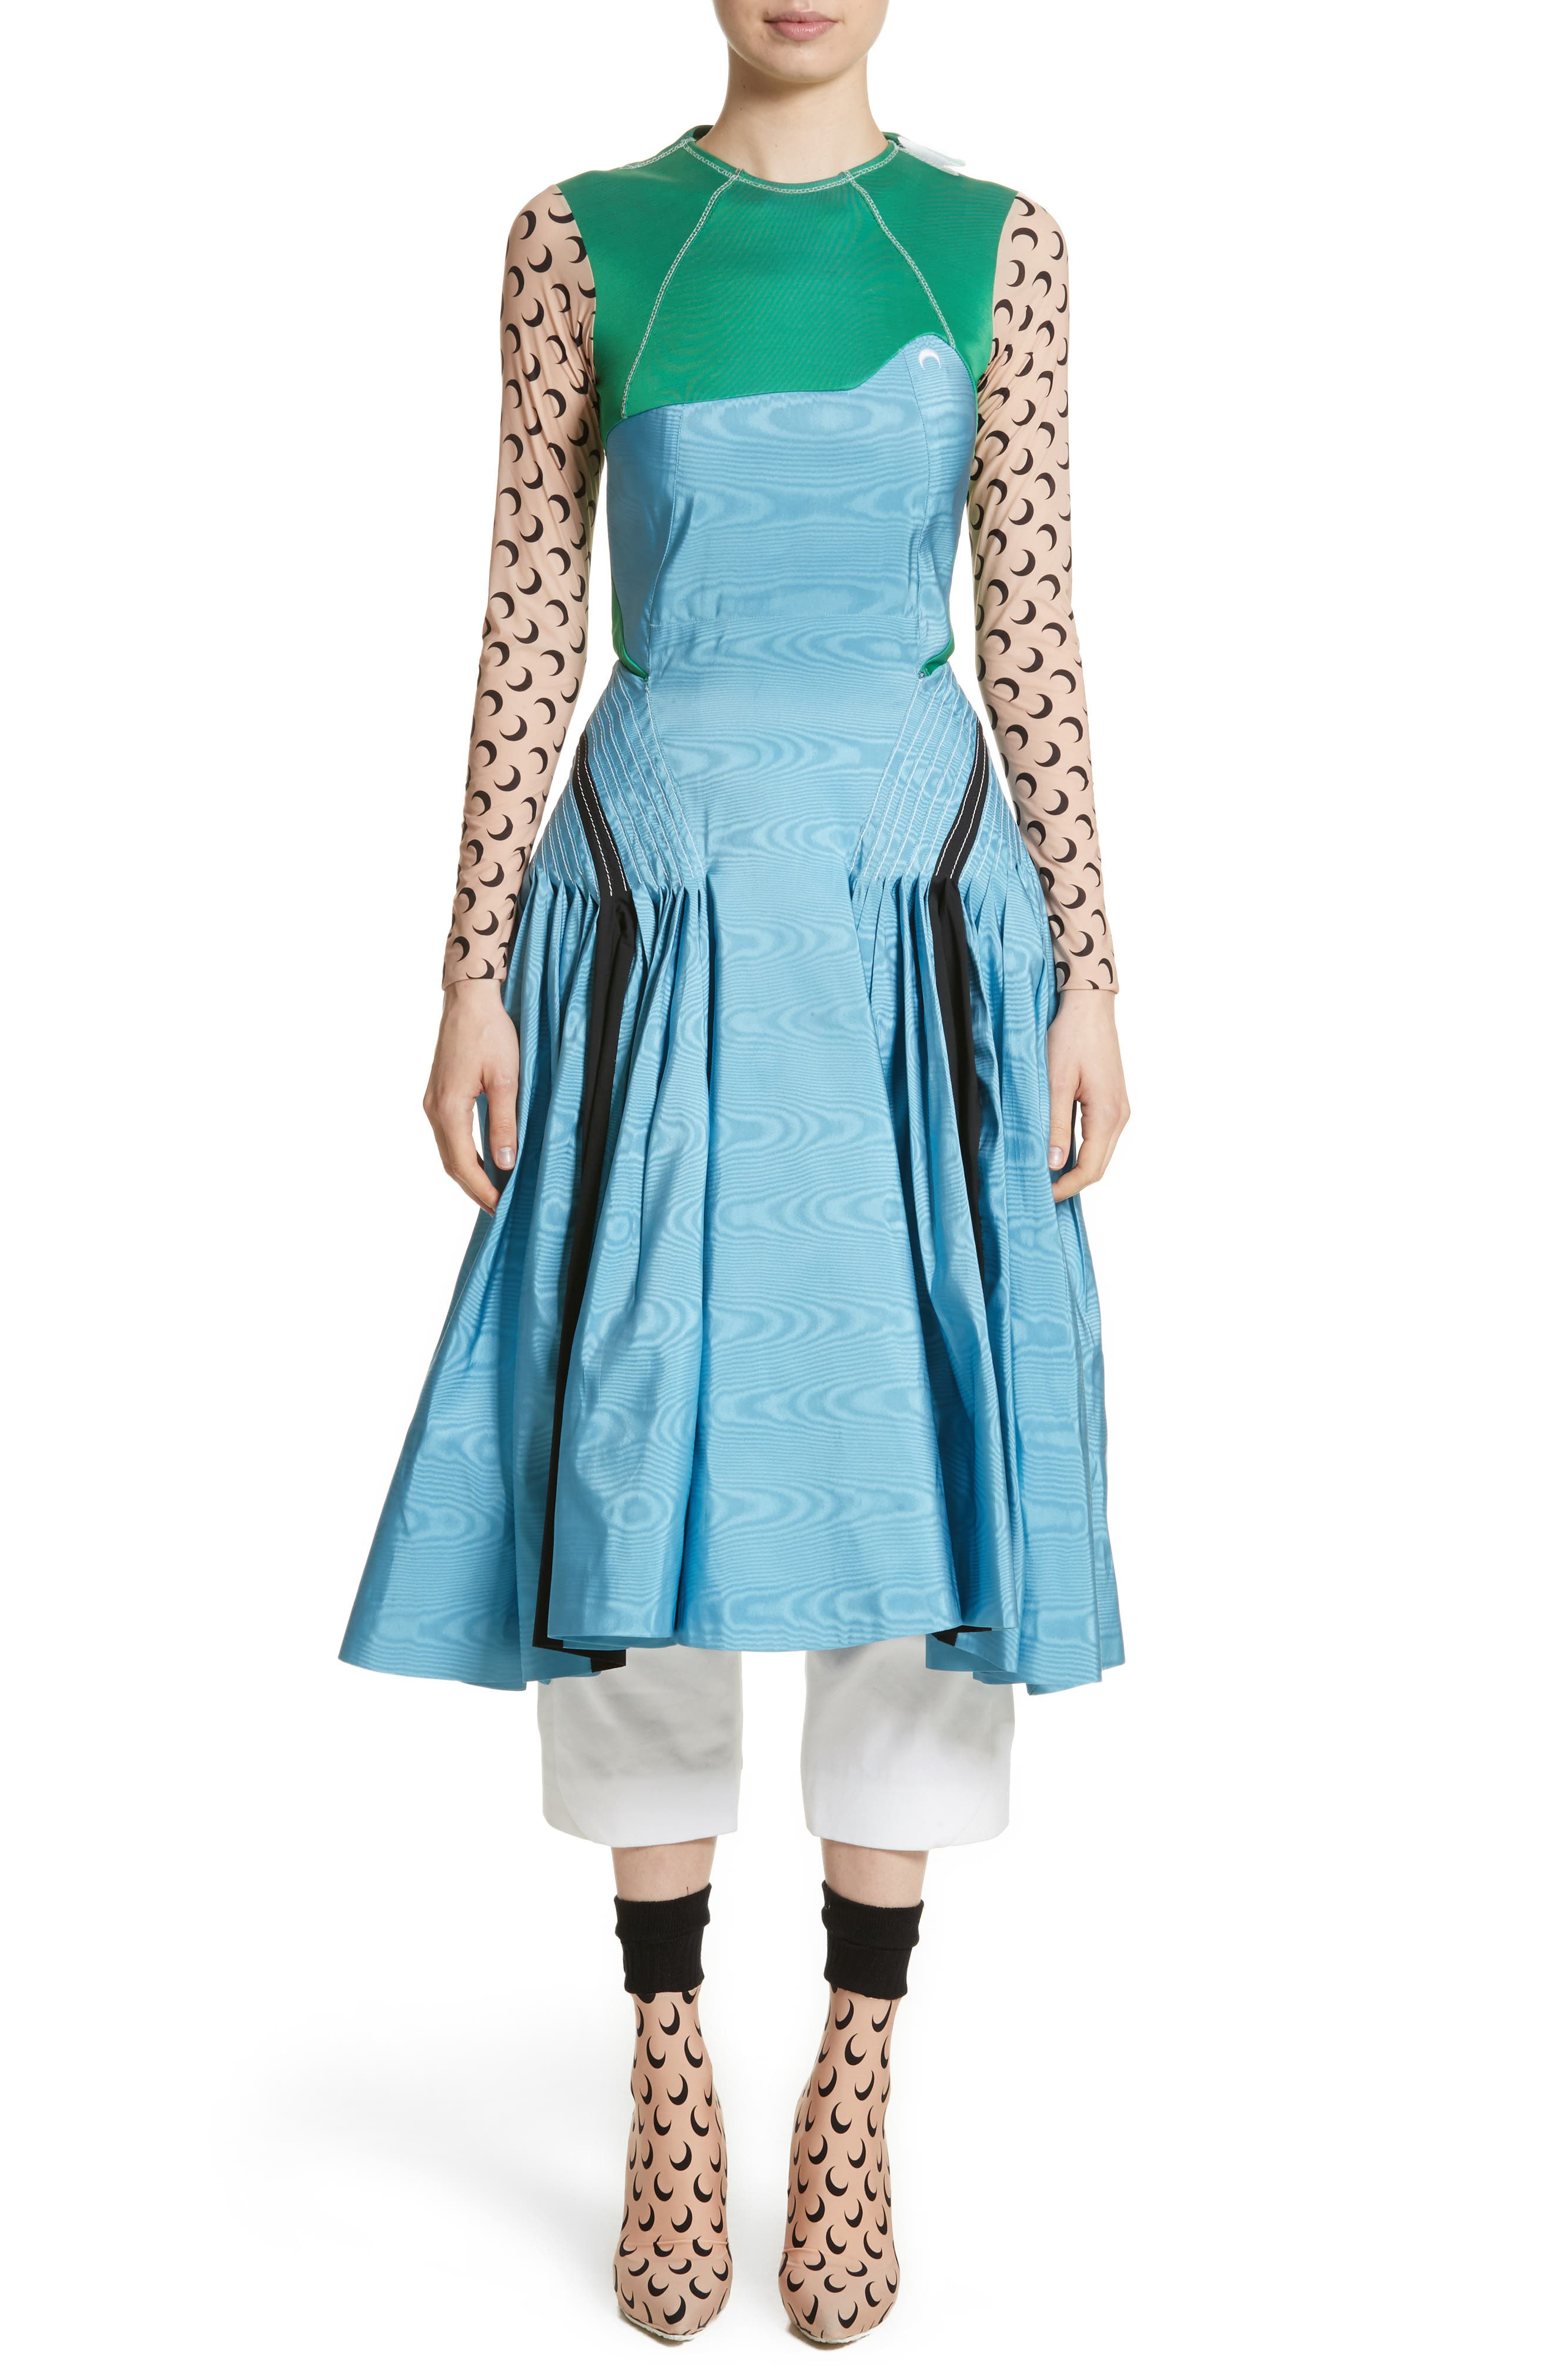 Pleated Moiré Dress,                             Main thumbnail 1, color,                             Blue Green Black